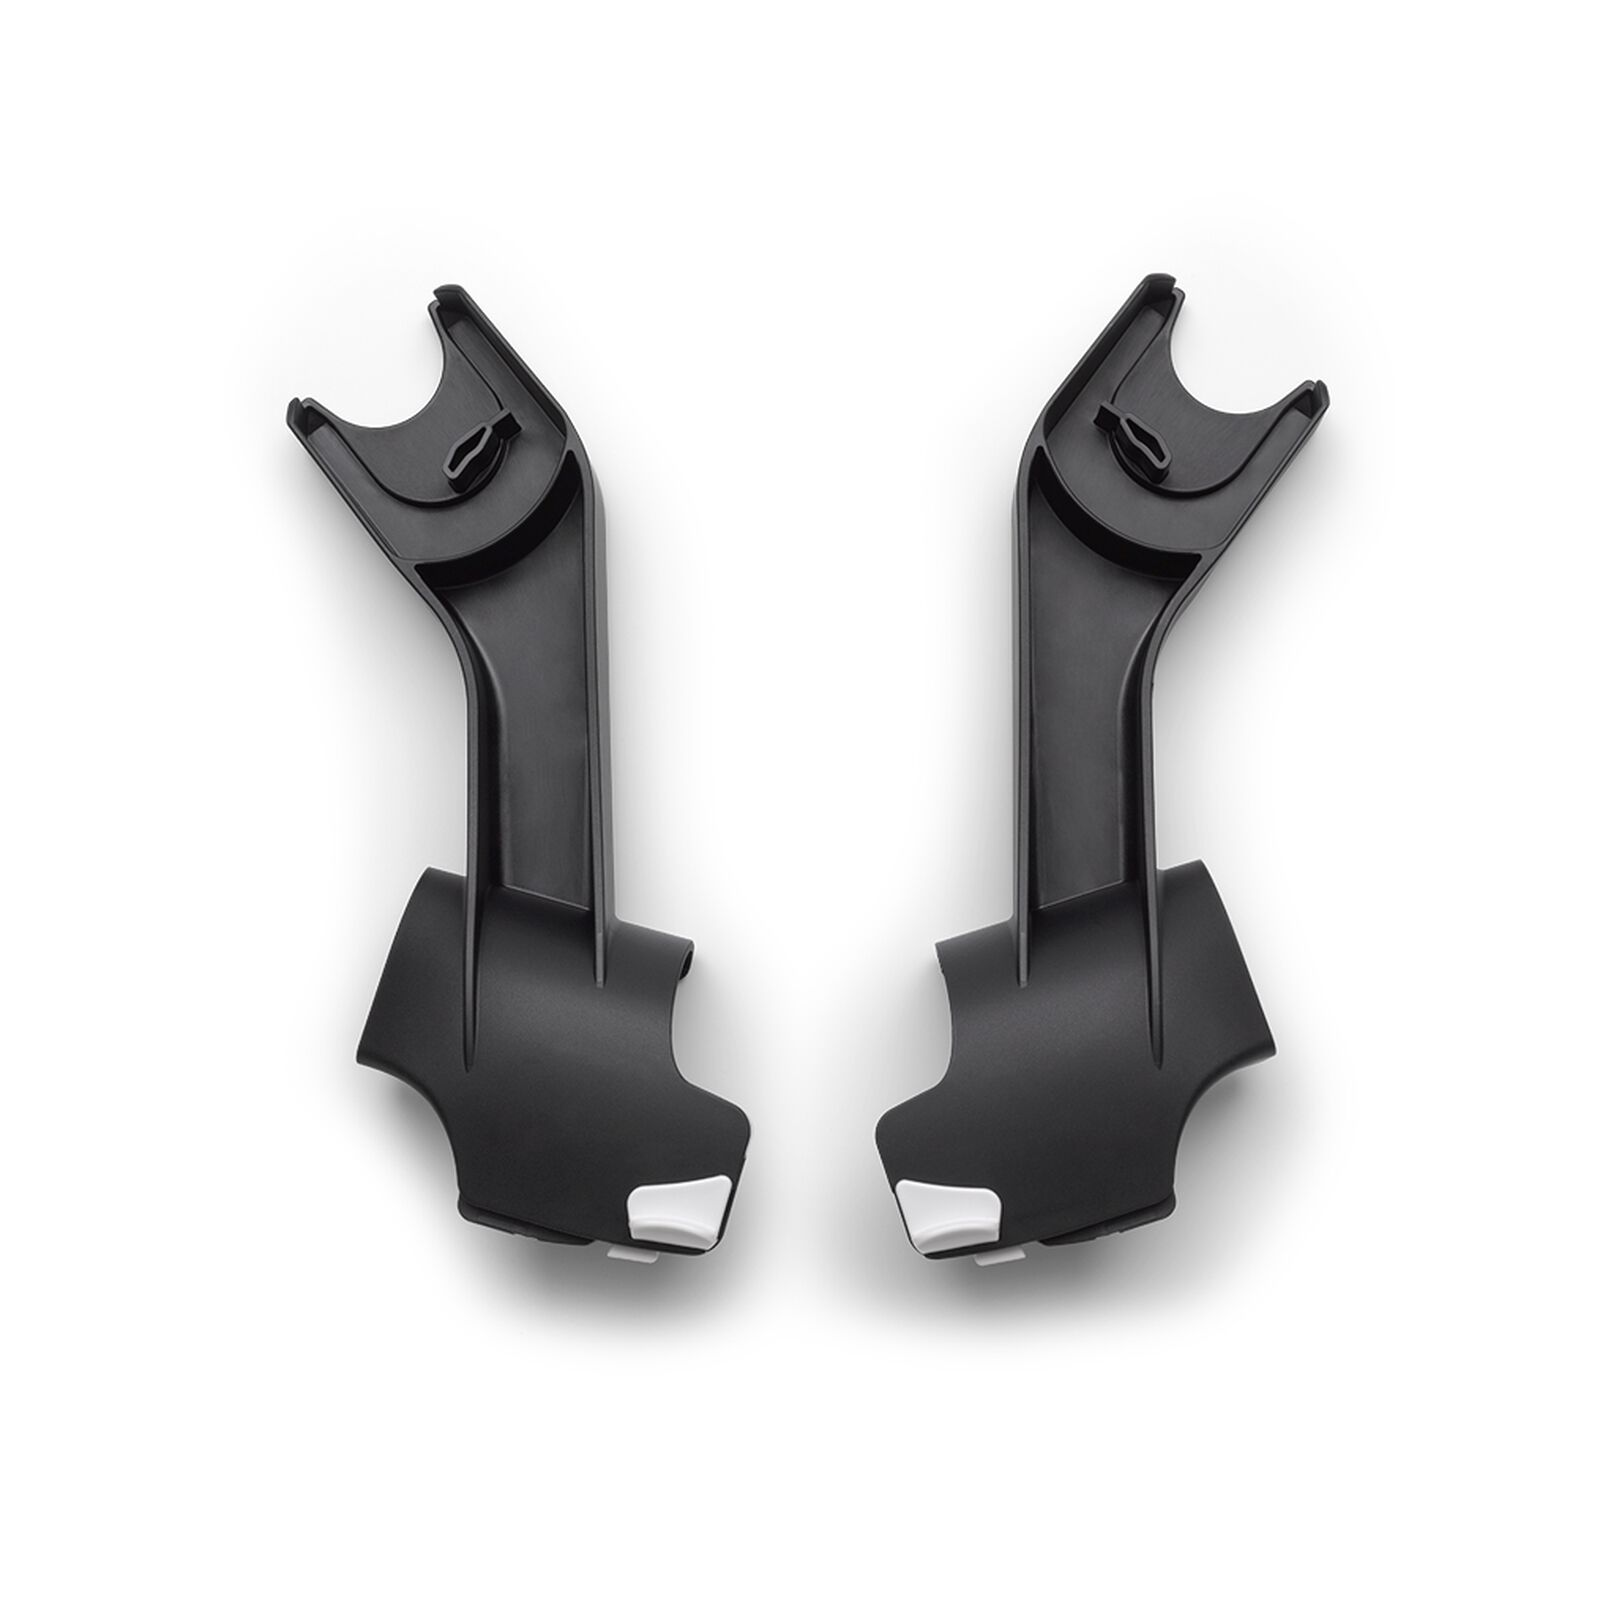 Bugaboo Ant adapter for car seat